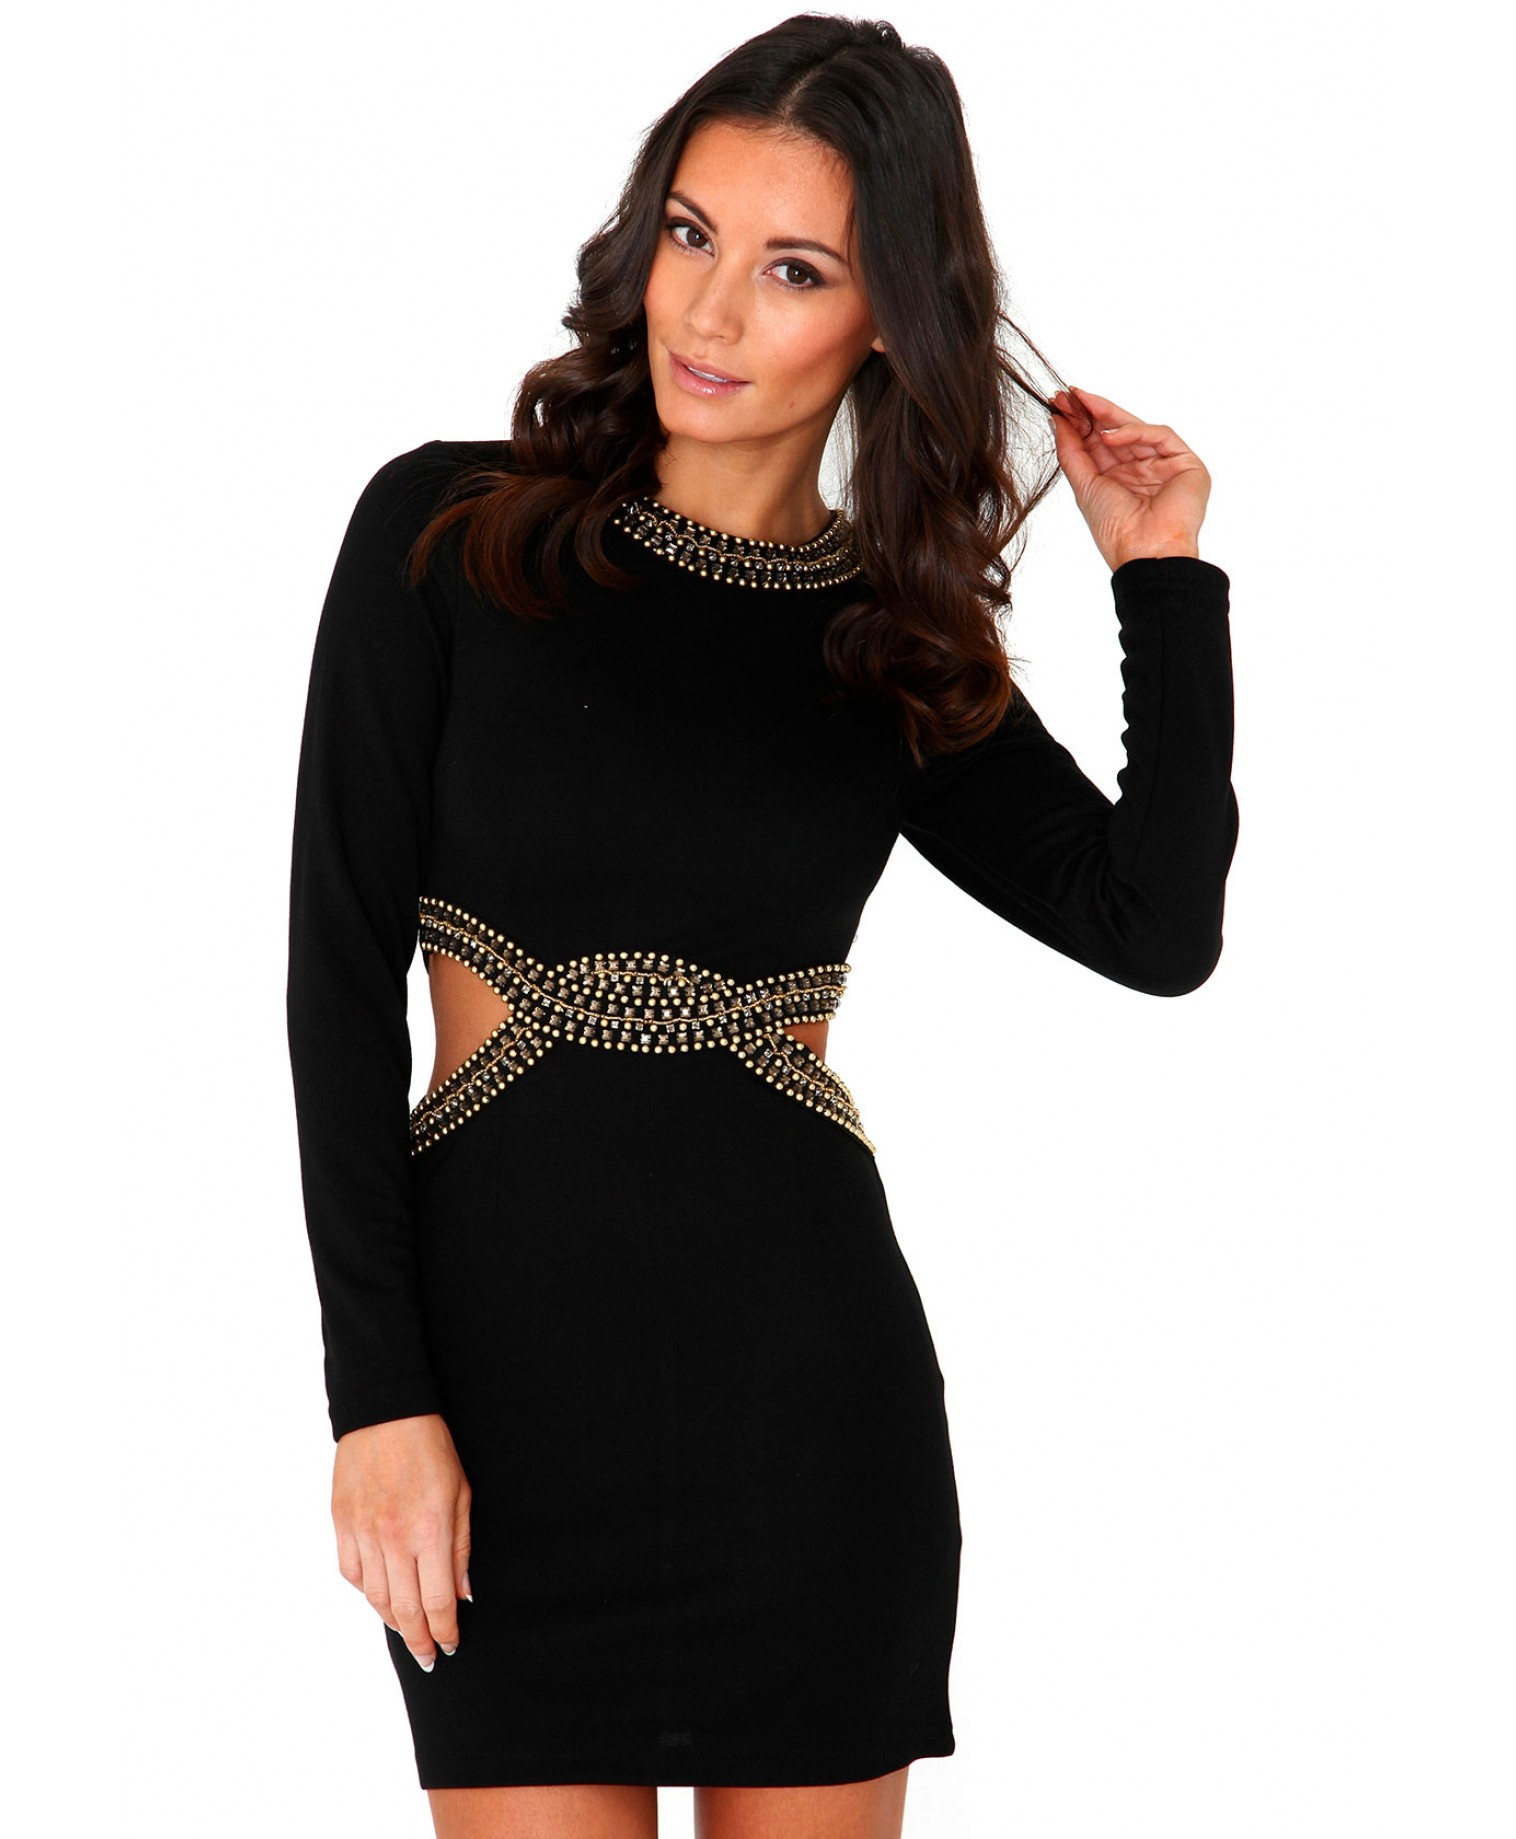 c9c54e91e078 Lyst - Missguided Farera Long Sleeve Cut Out Embellished Bodycon ...